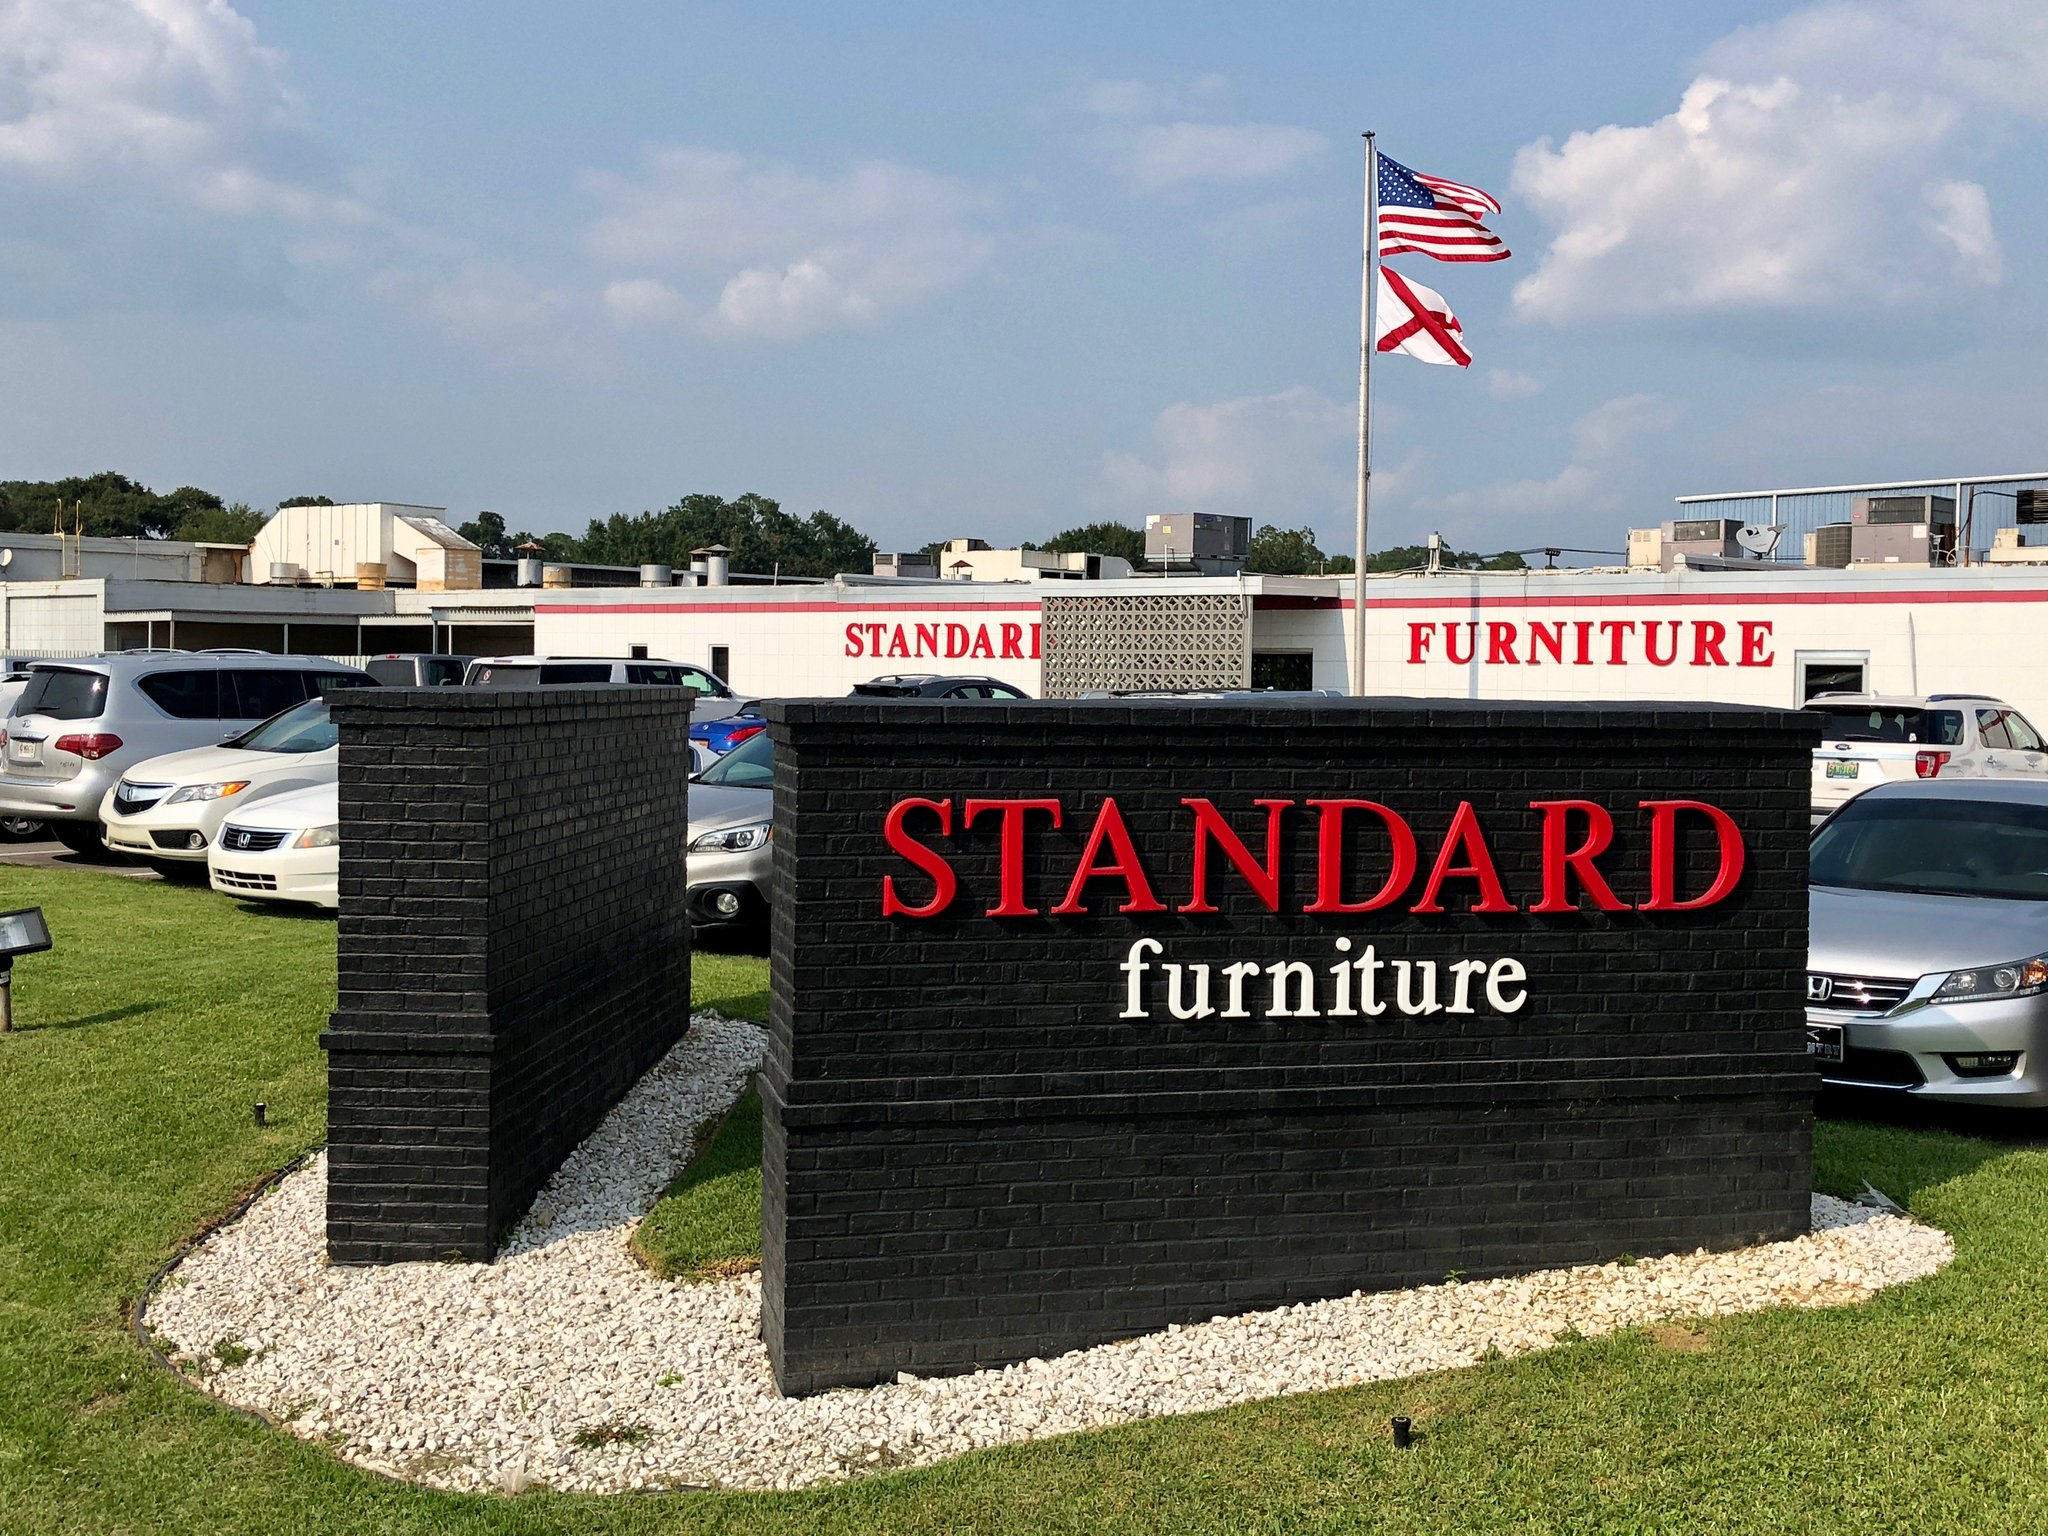 Standard Furniture On Twitter Has Been Based In Bay Minette Alabama Since 1946 We Supply The That Enhances Your Life